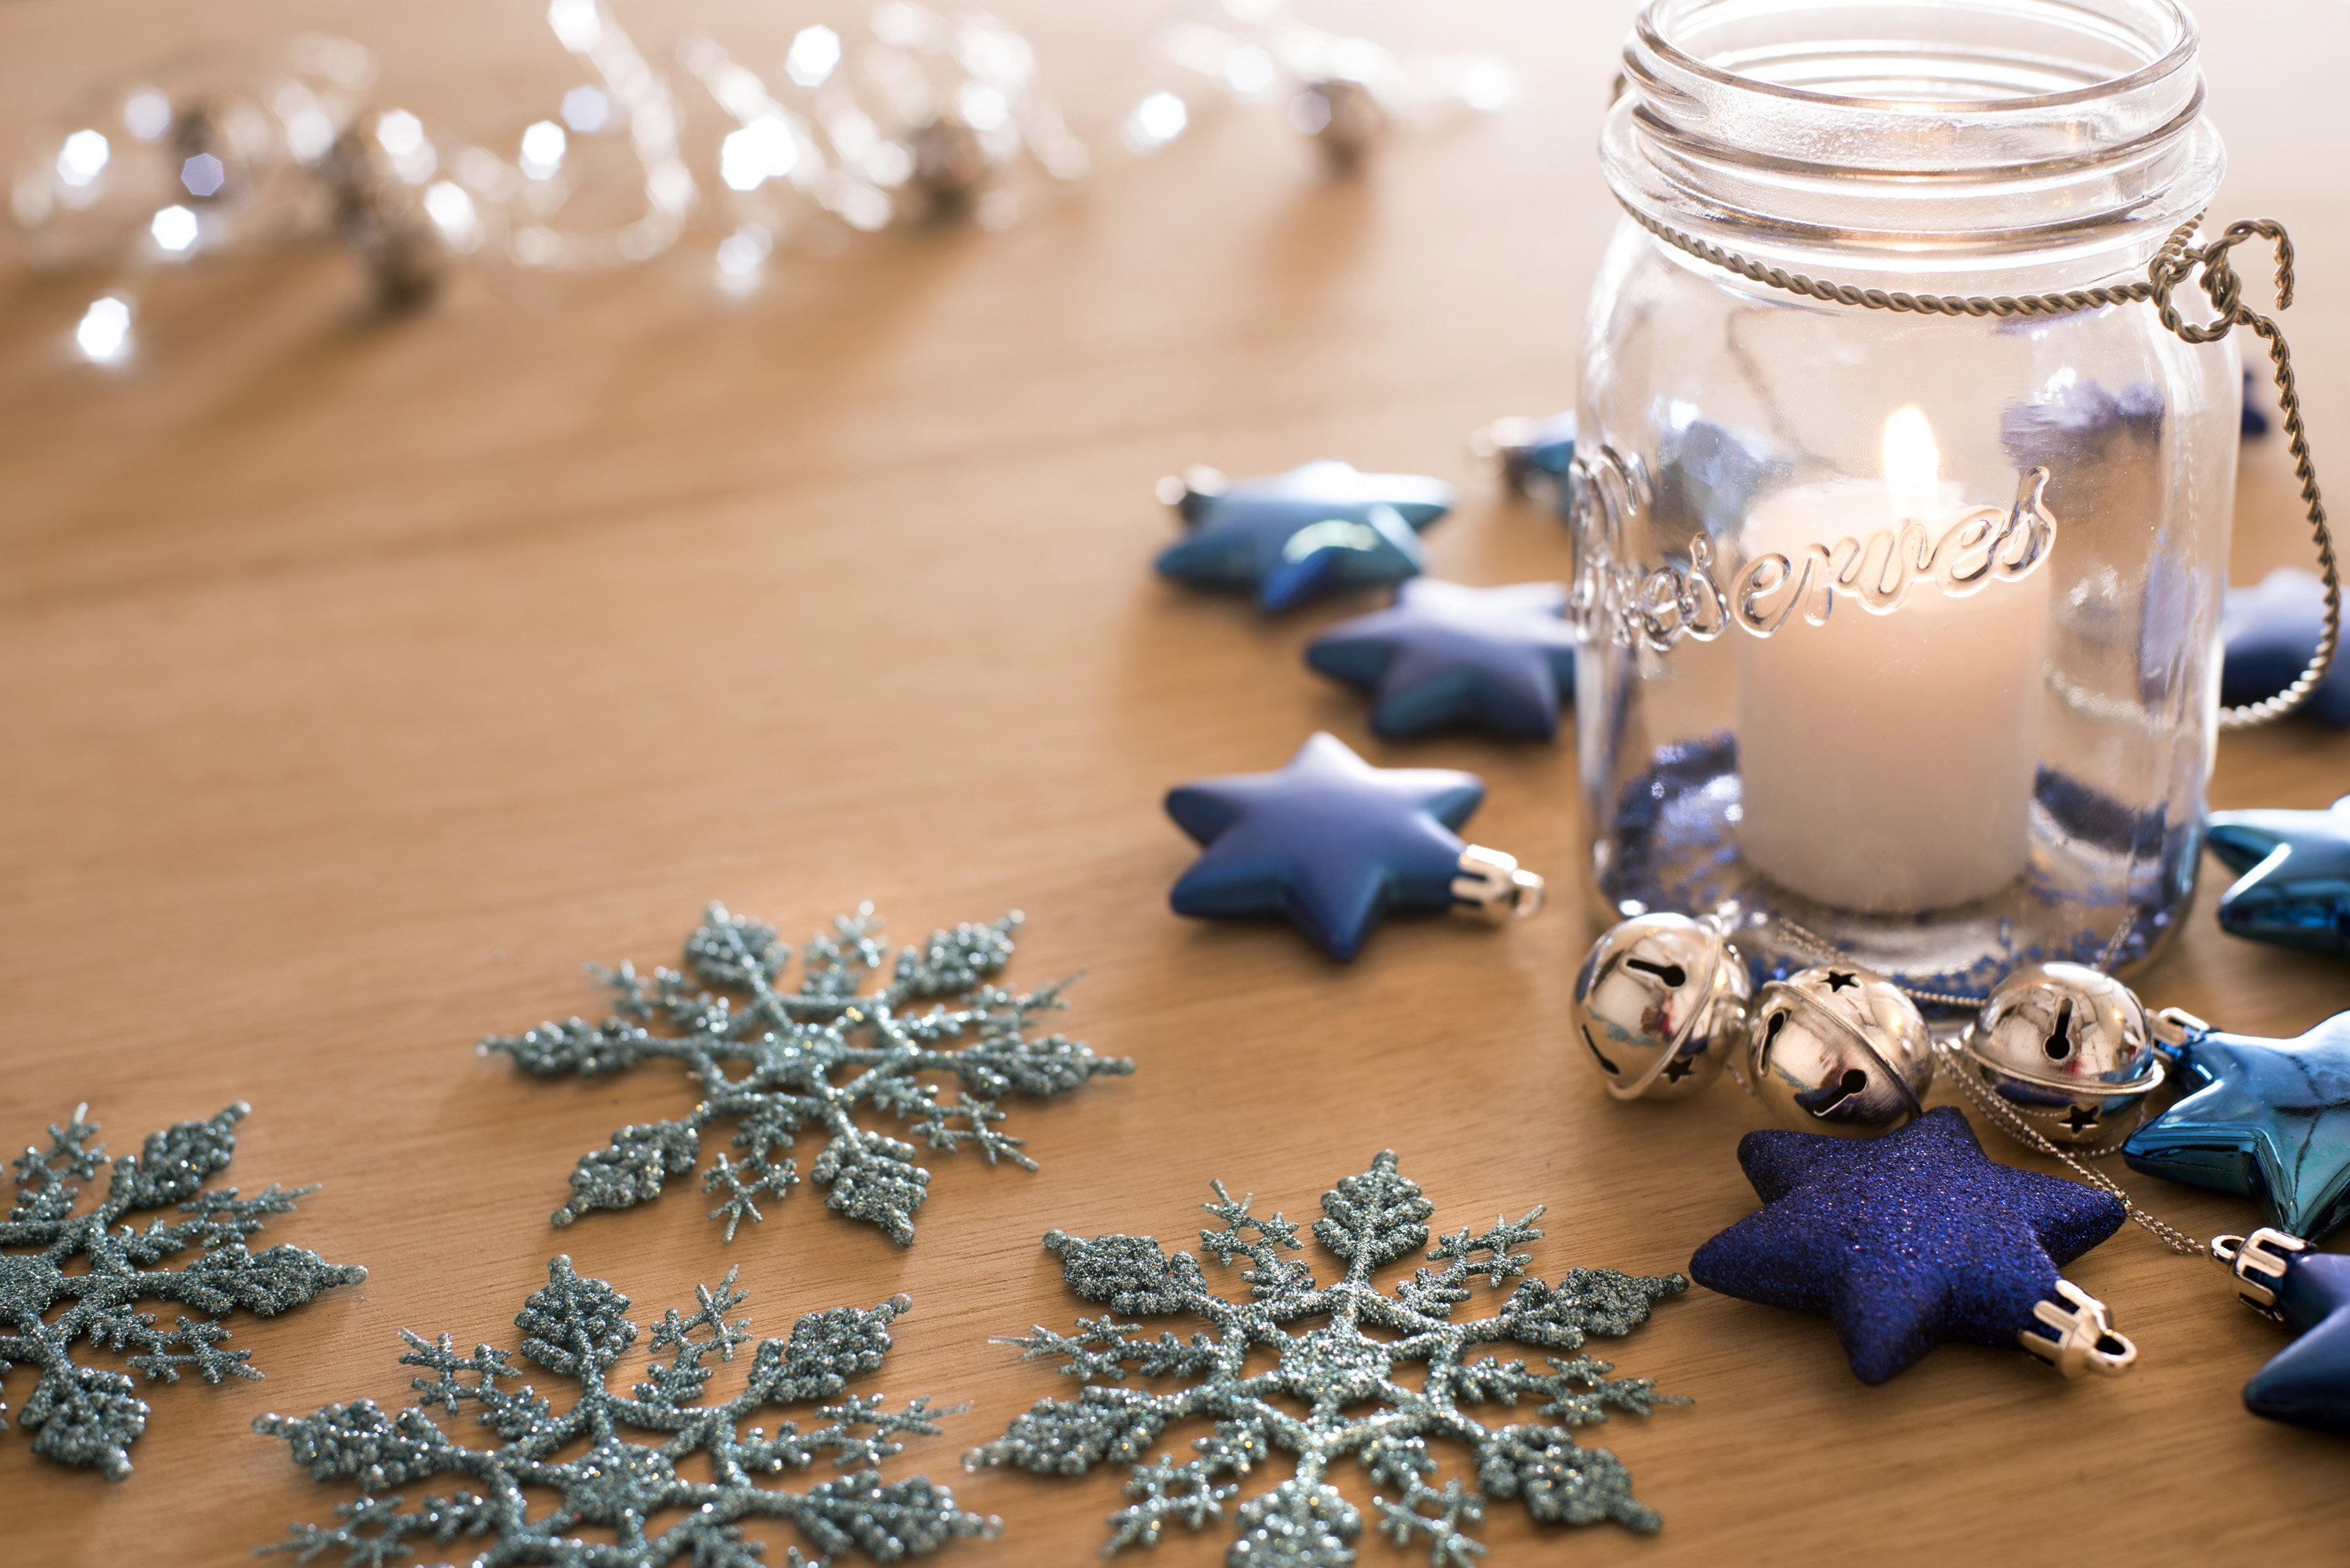 Still life of some decorative snowflakes and a jar with a lit candle inside